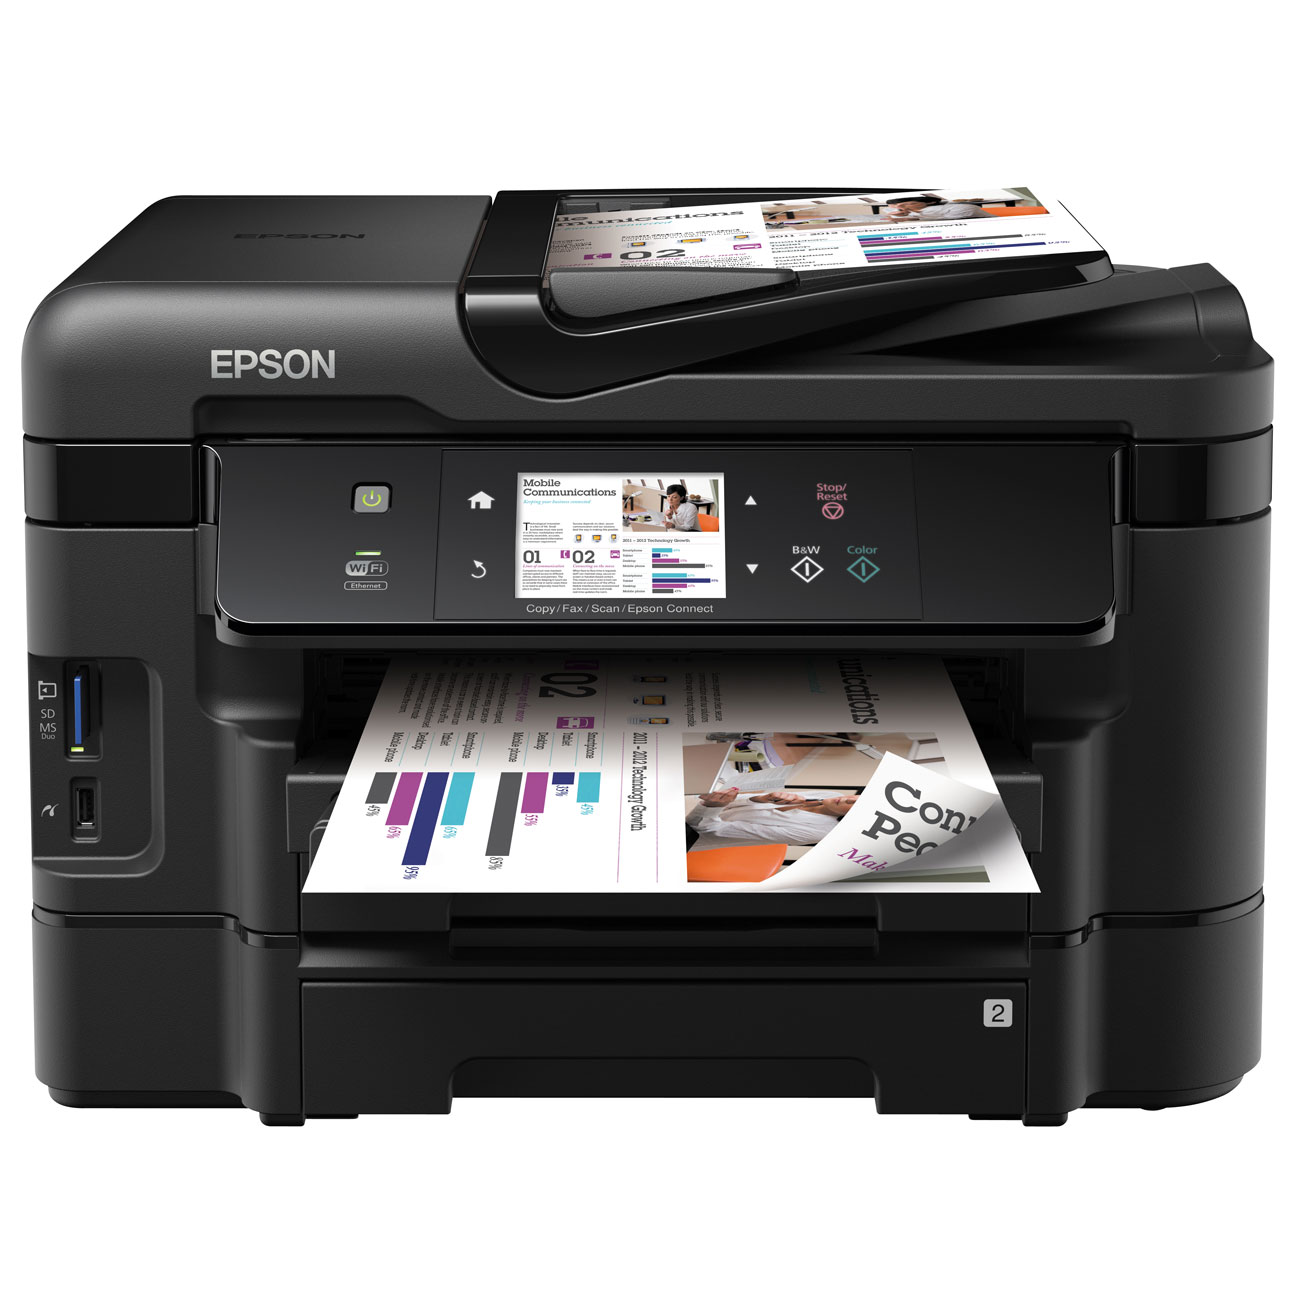 epson workforce wf 3540dtwf imprimante multifonction epson sur. Black Bedroom Furniture Sets. Home Design Ideas